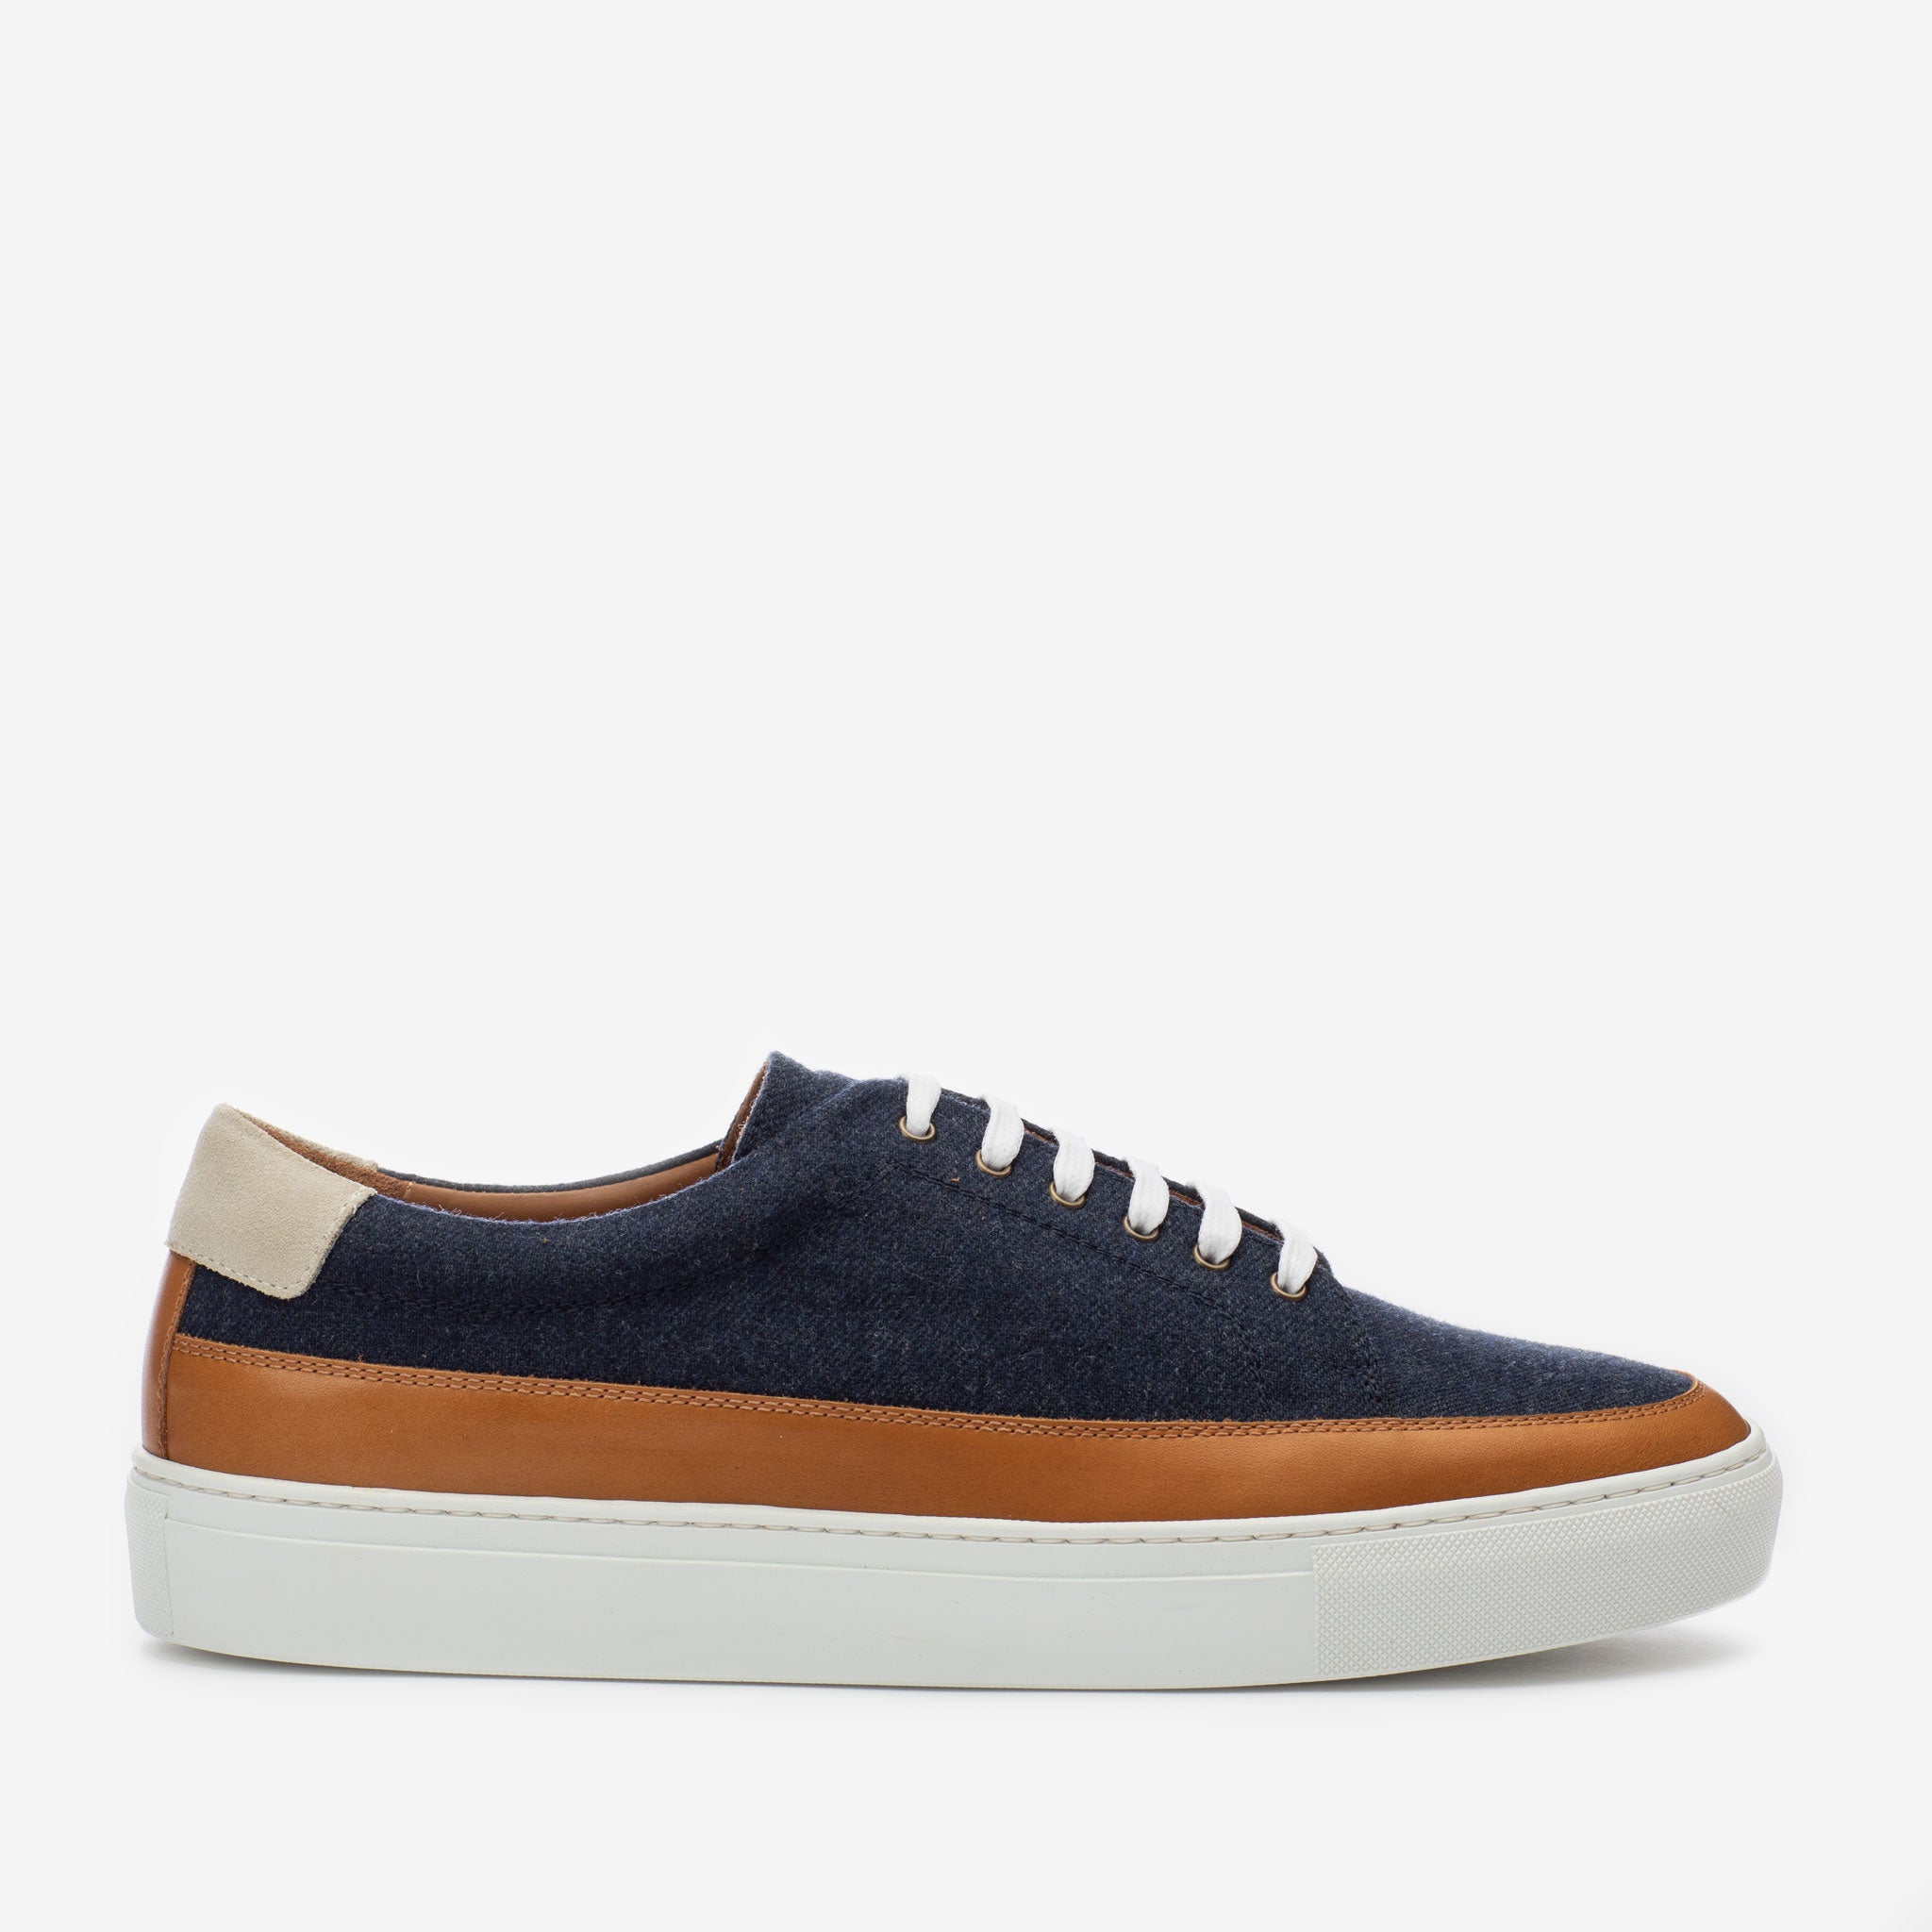 Fifth Ave Sneaker in Navy Side